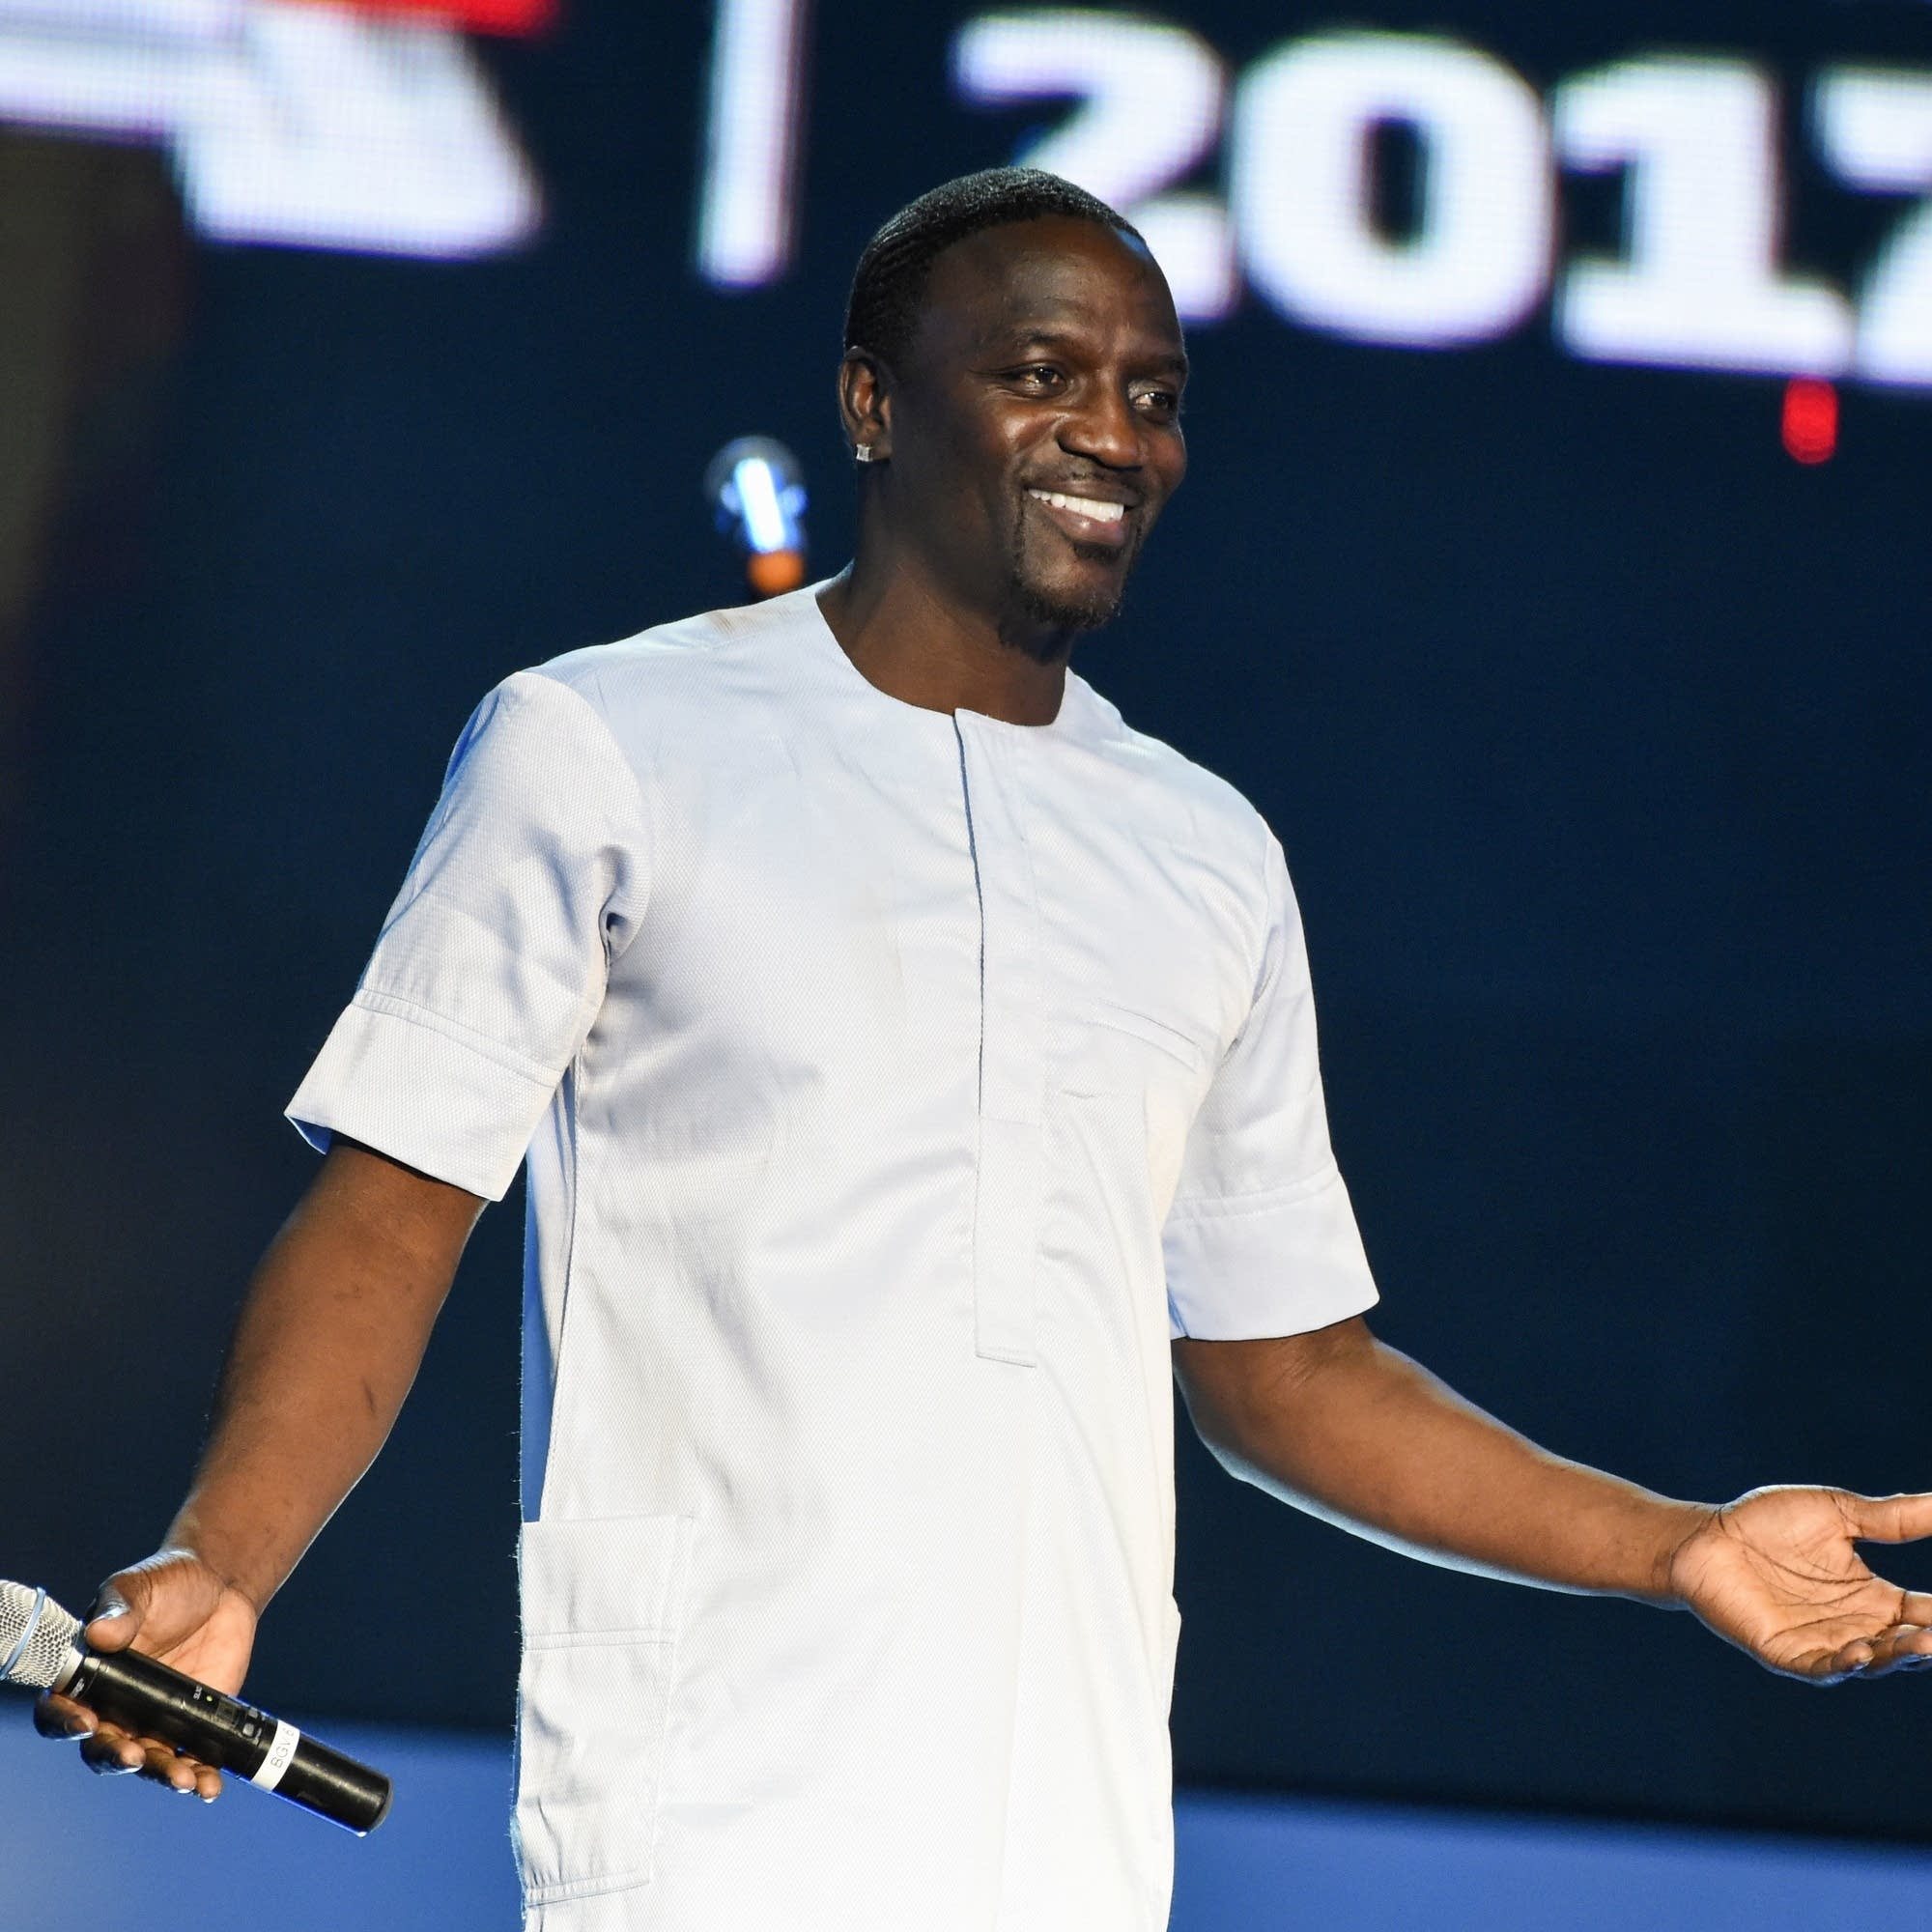 Akon performs in Lagos, Nigeria in 2017.